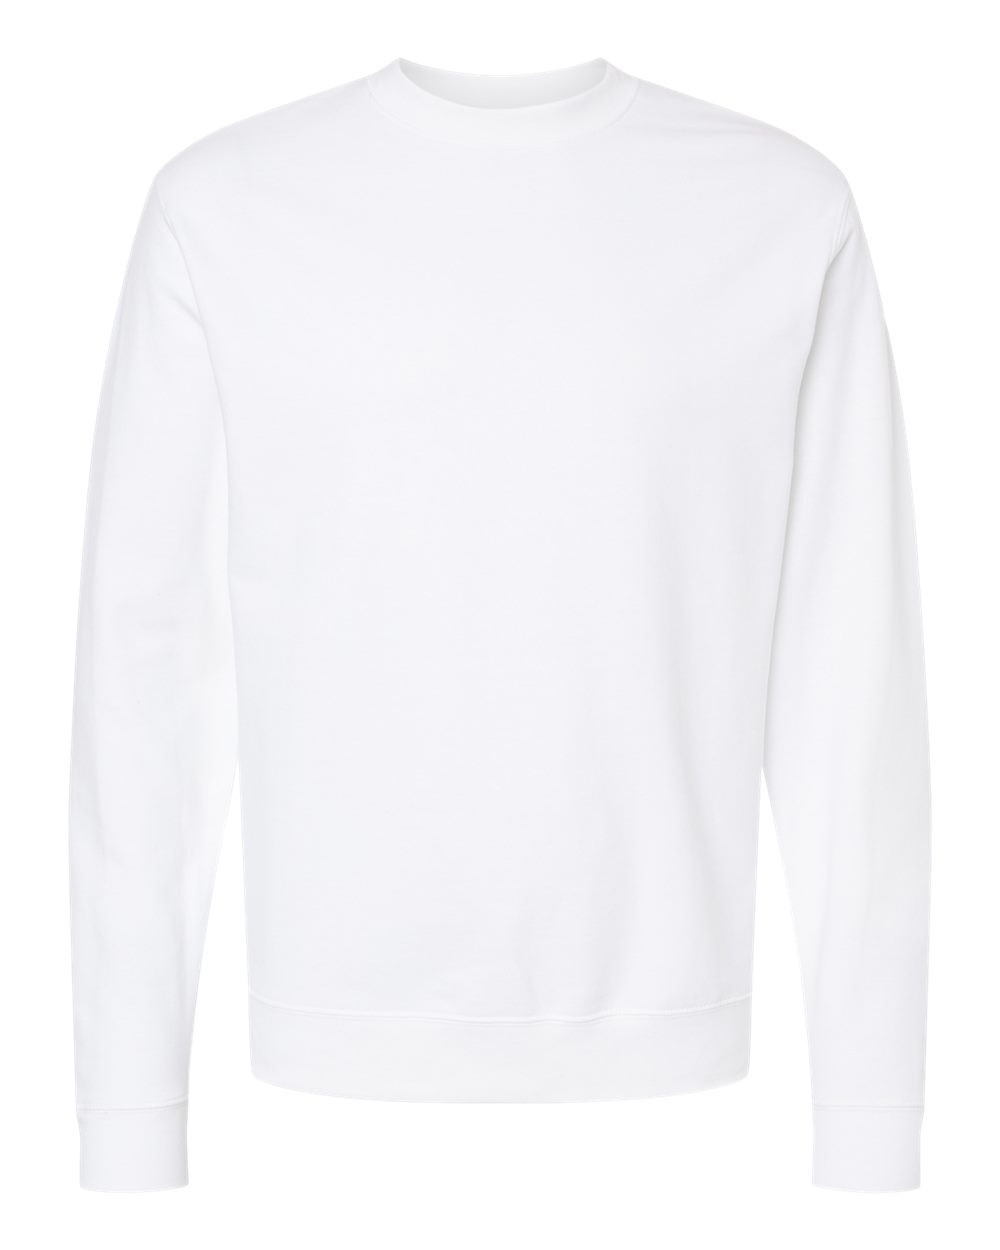 Independent-Trading-Co-Midweight-Crewneck-Sweatshirt-SS3000-up-to-3XL miniature 36